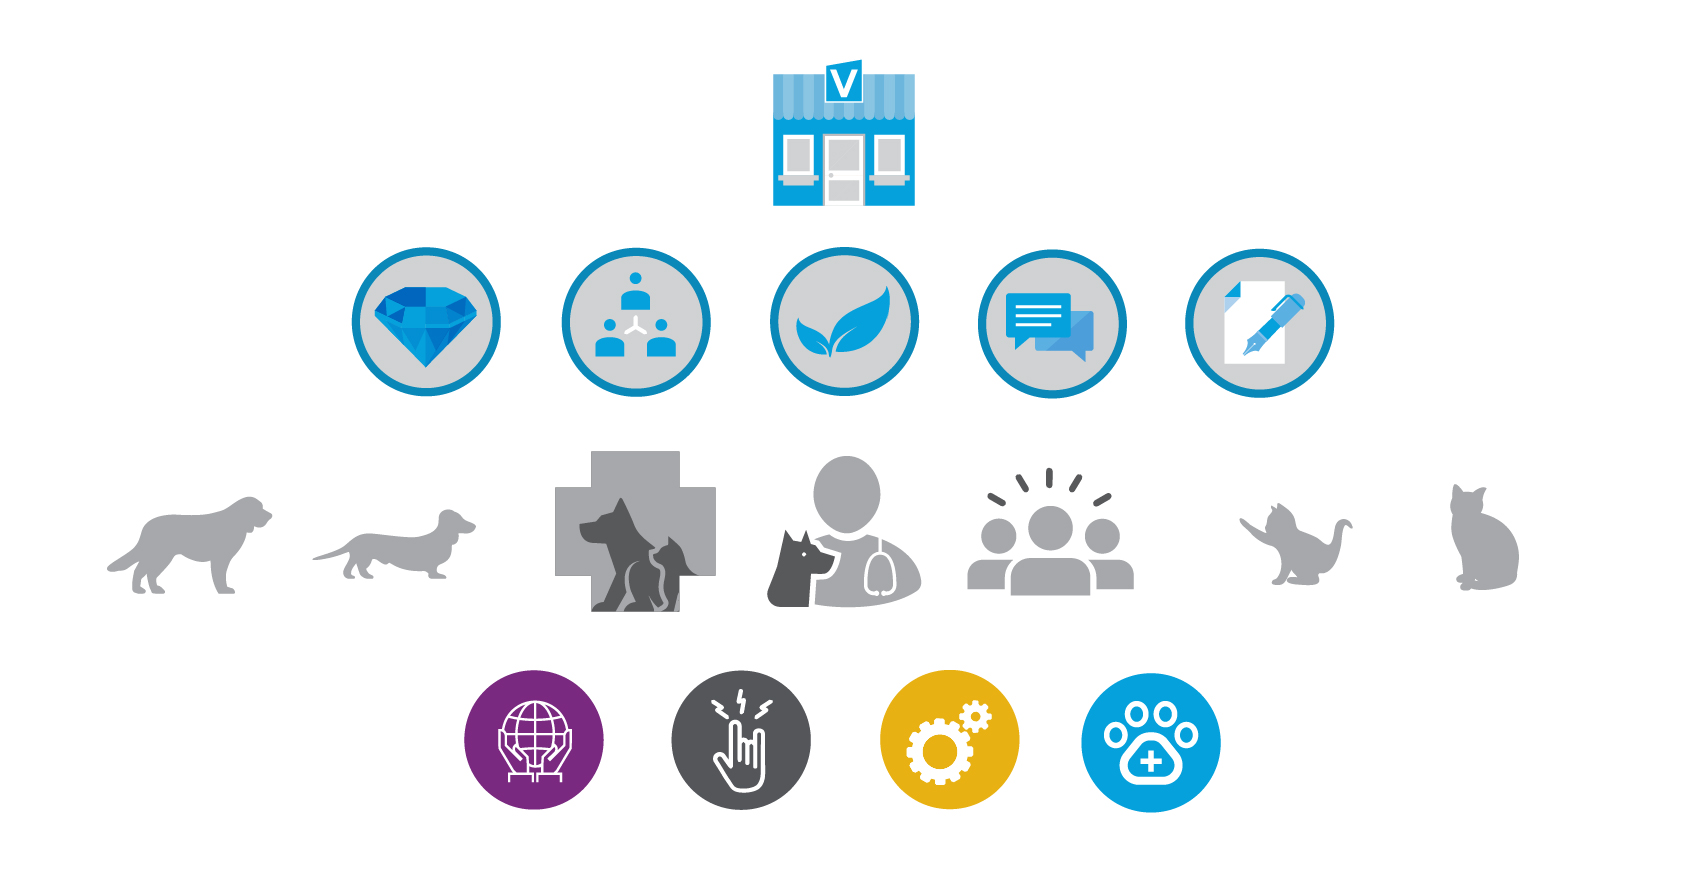 Icons created for Thrive Vet Care's internal training program